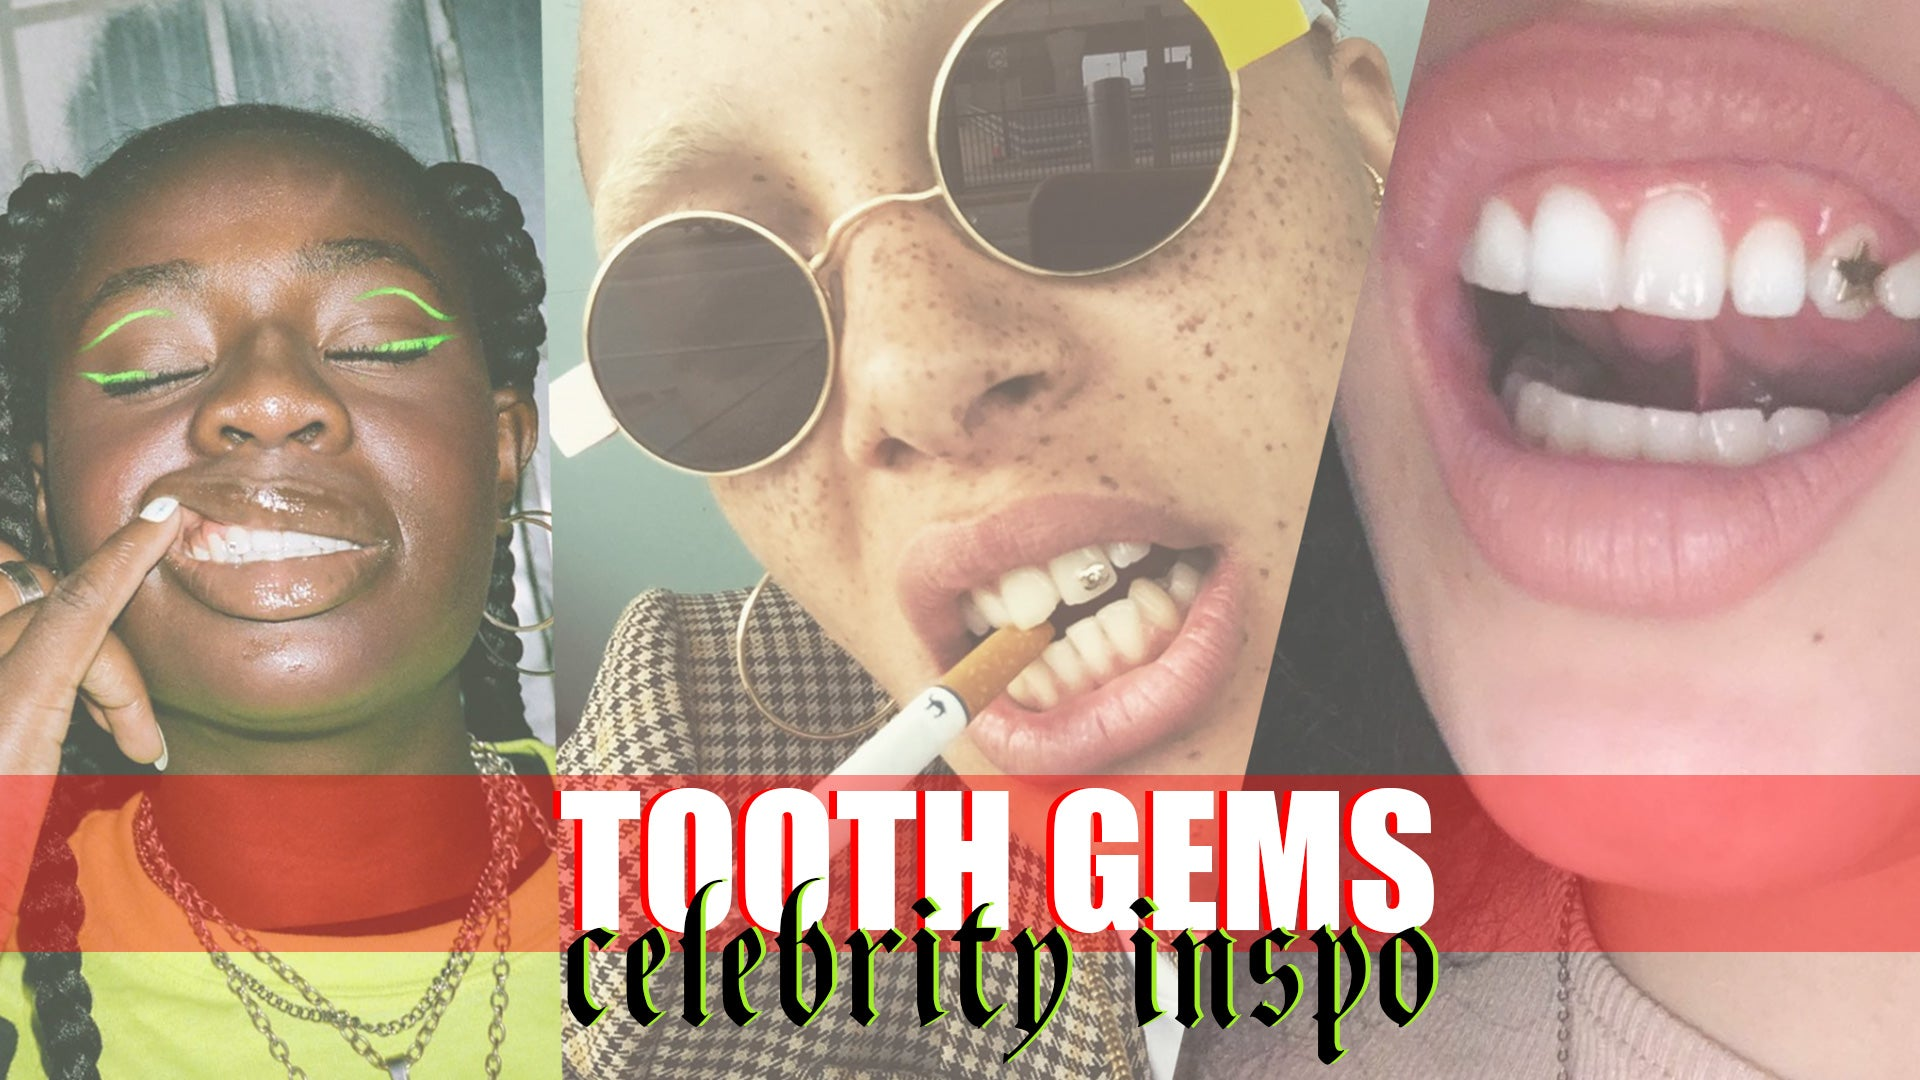 The tooth gem comeback trend